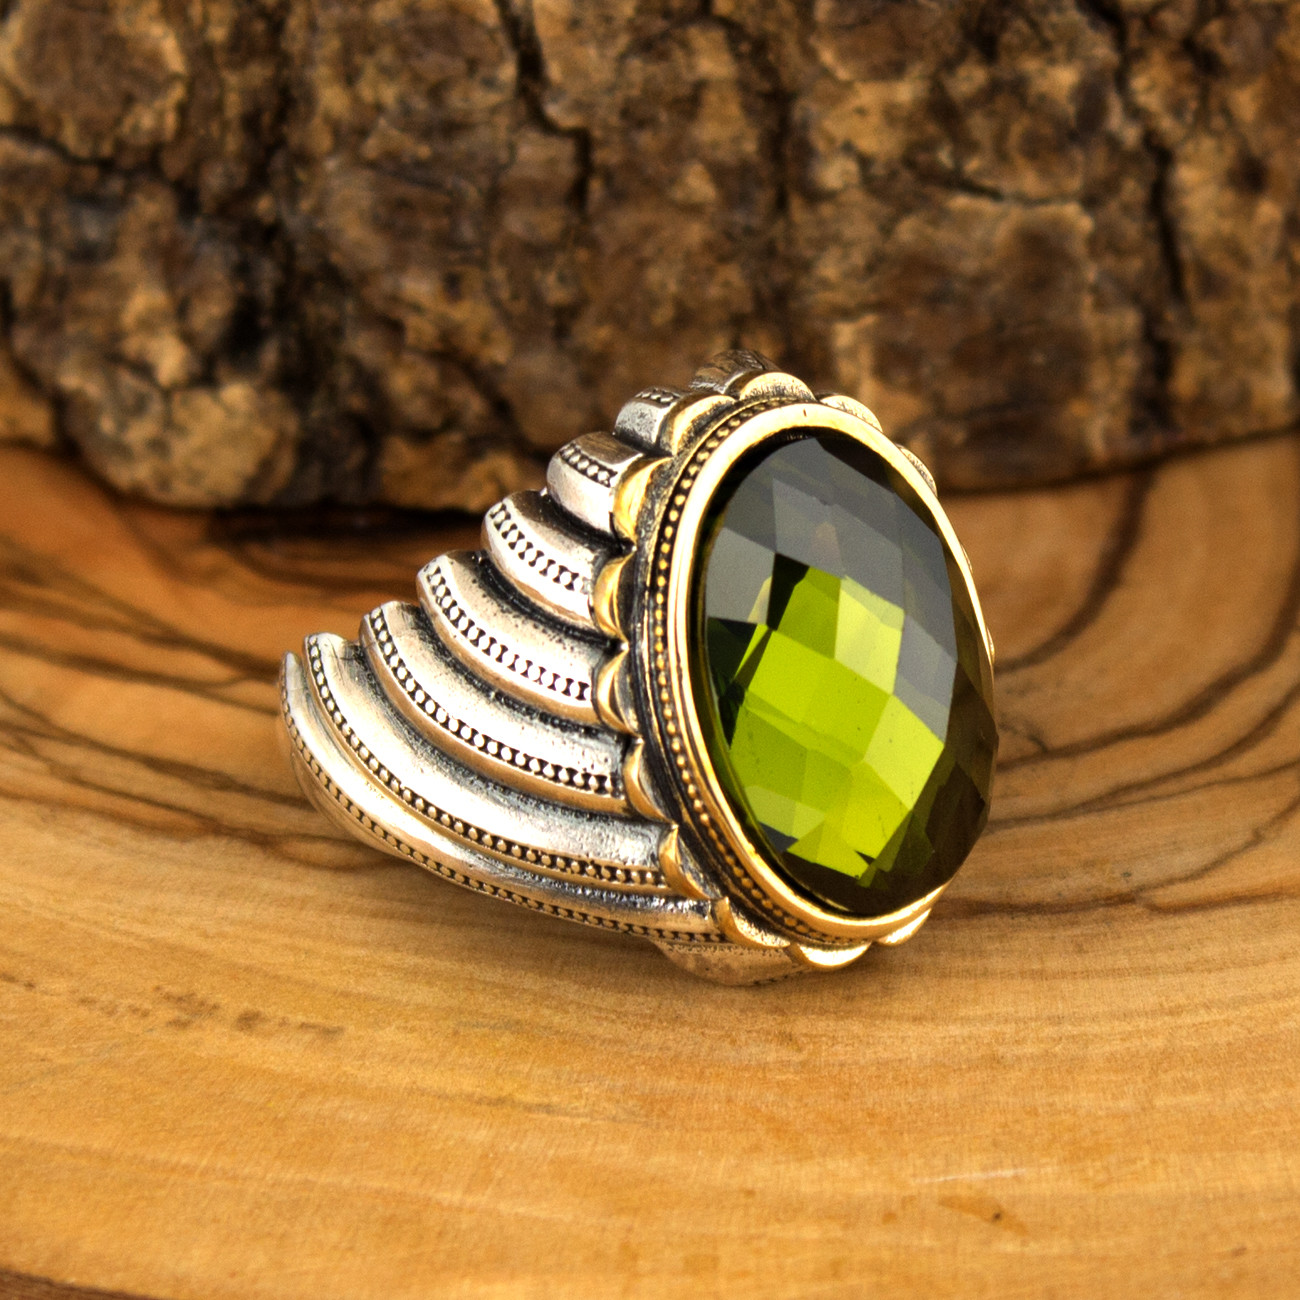 925 Sterling Silver Ring For Men With Yellow Zircon Stone (Made In Turkey)